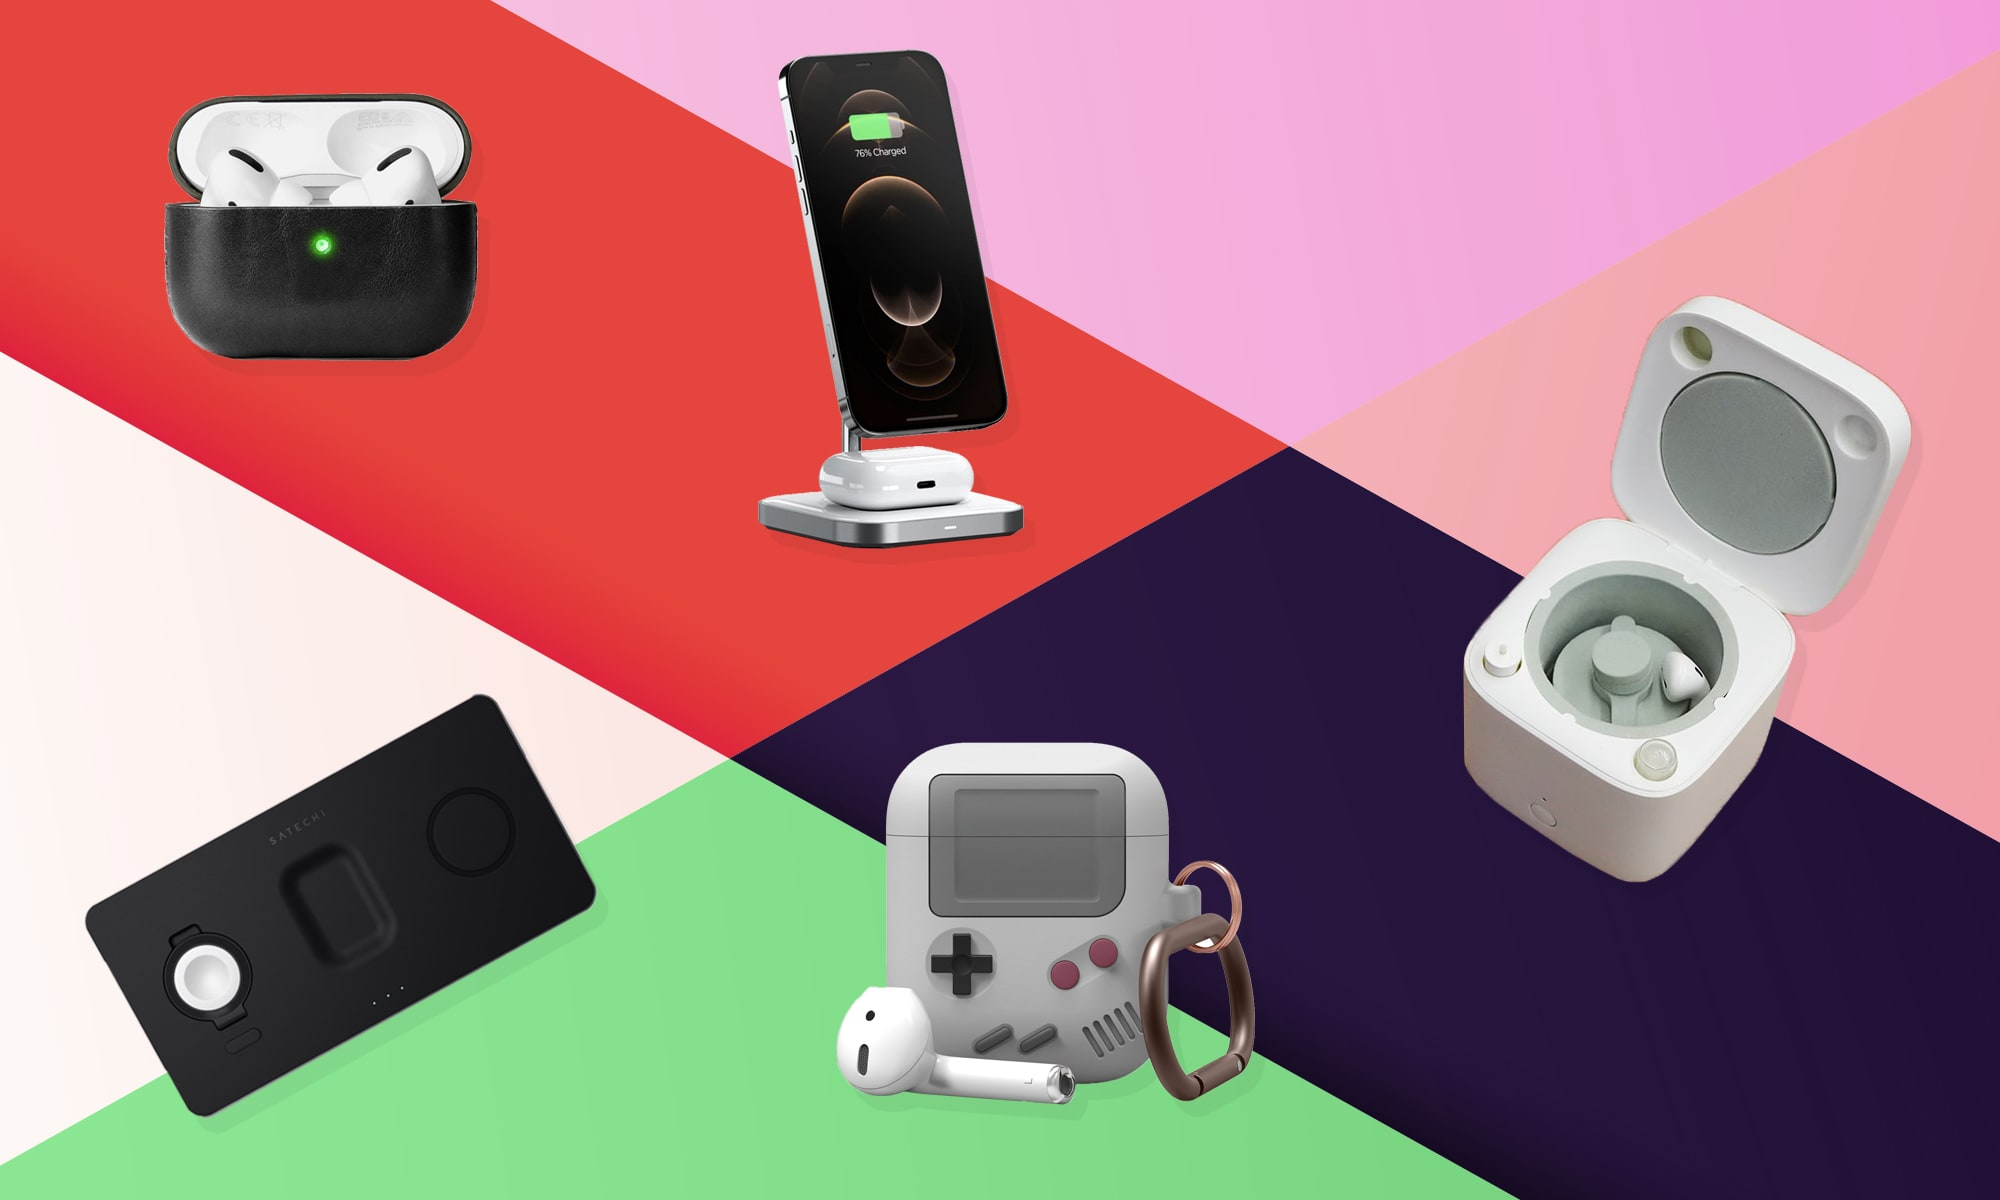 The coolest AirPods gadgets and accessories you can buy that will make you love them more featured image